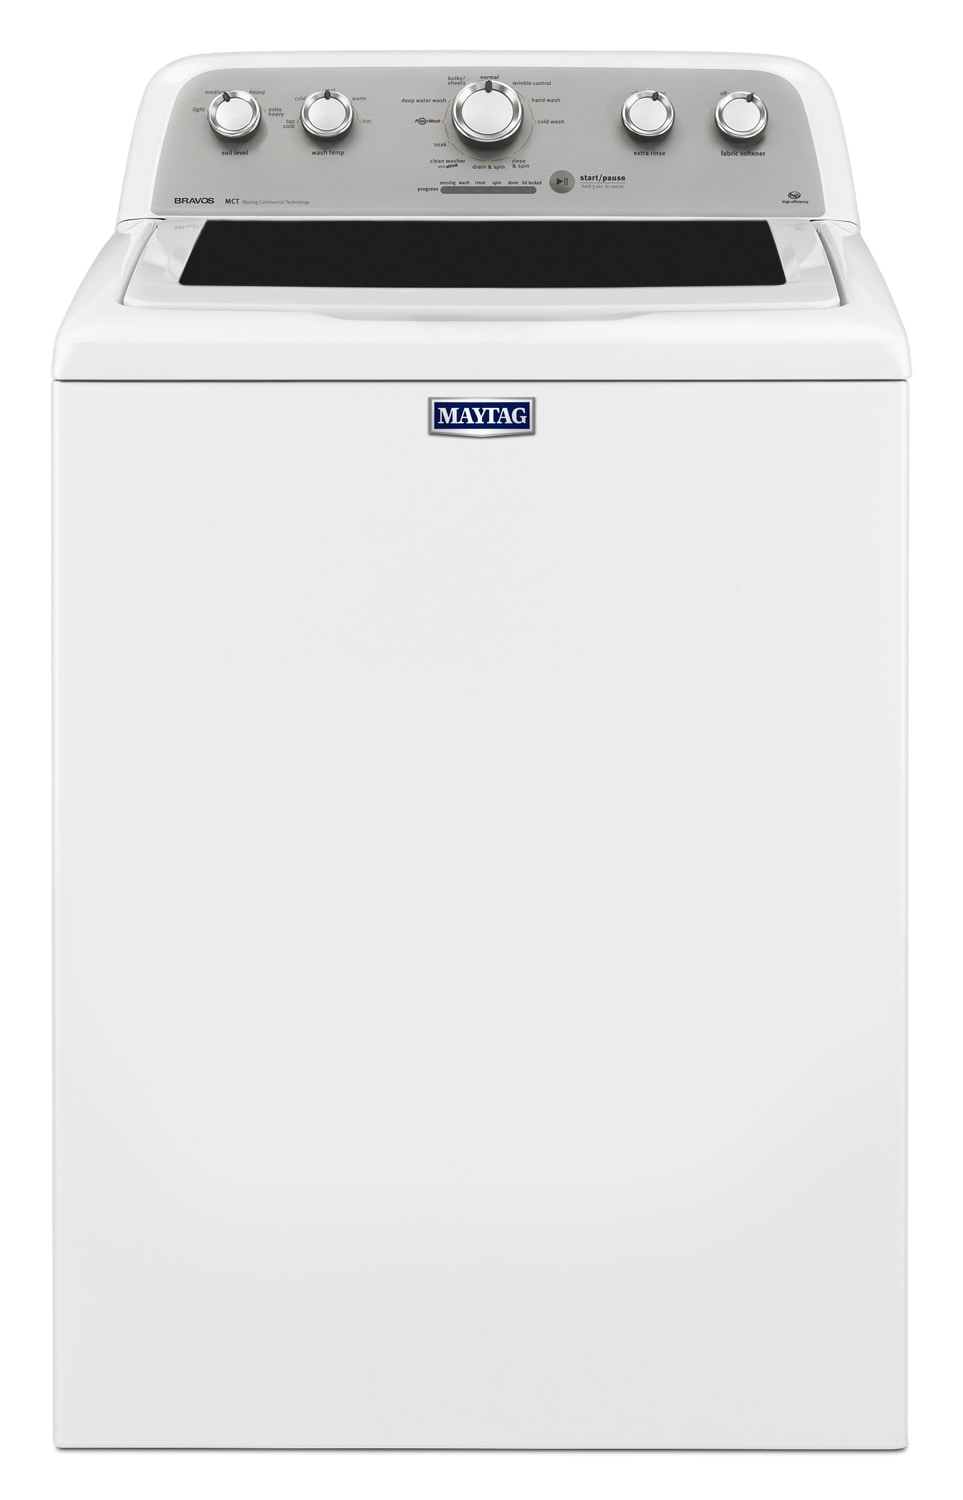 Washers and Dryers - Maytag Bravos® 5.0 Cu. Ft. Top-Load Washer - White